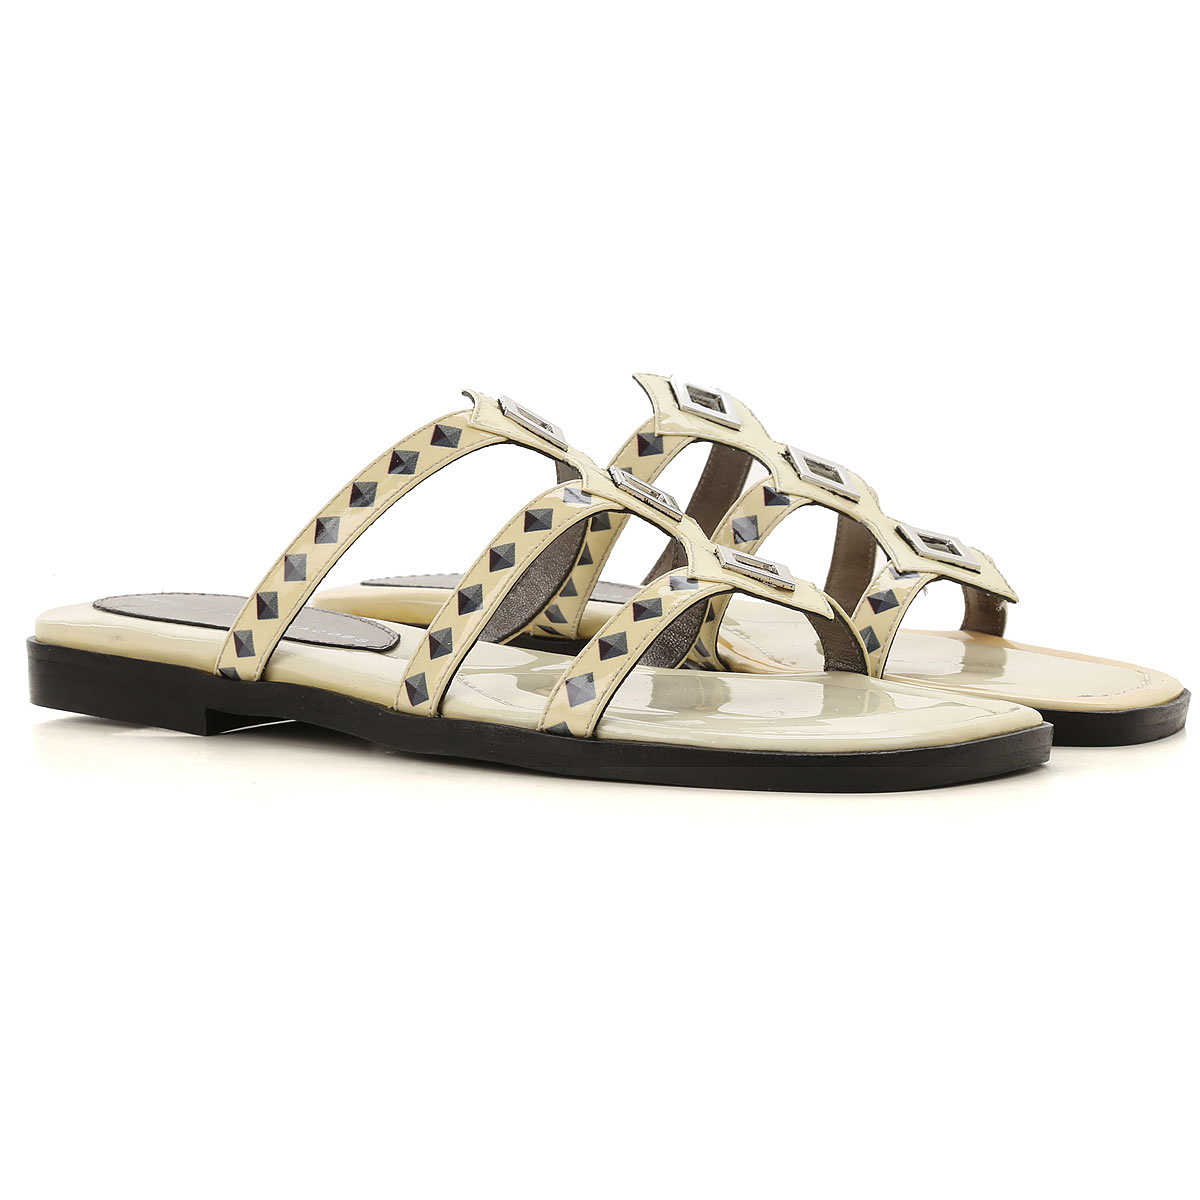 Marc Jacobs Sandals for Women On Sale in Outlet Ivory - GOOFASH